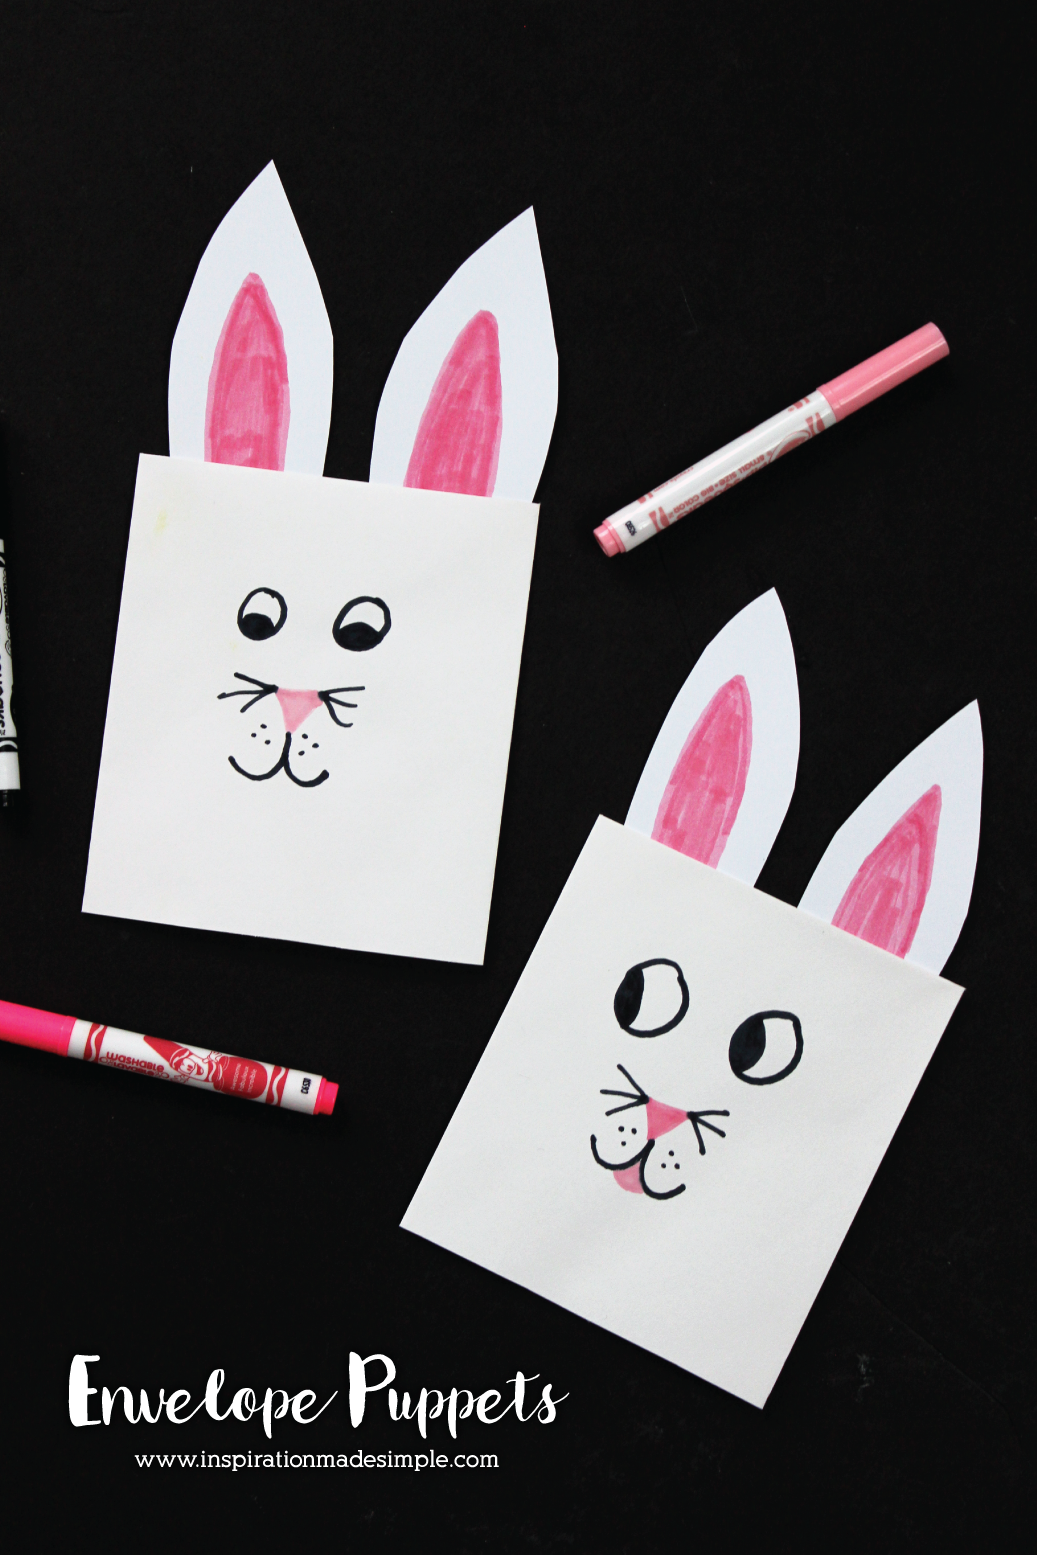 How to Make Bunny Envelopes for Easter